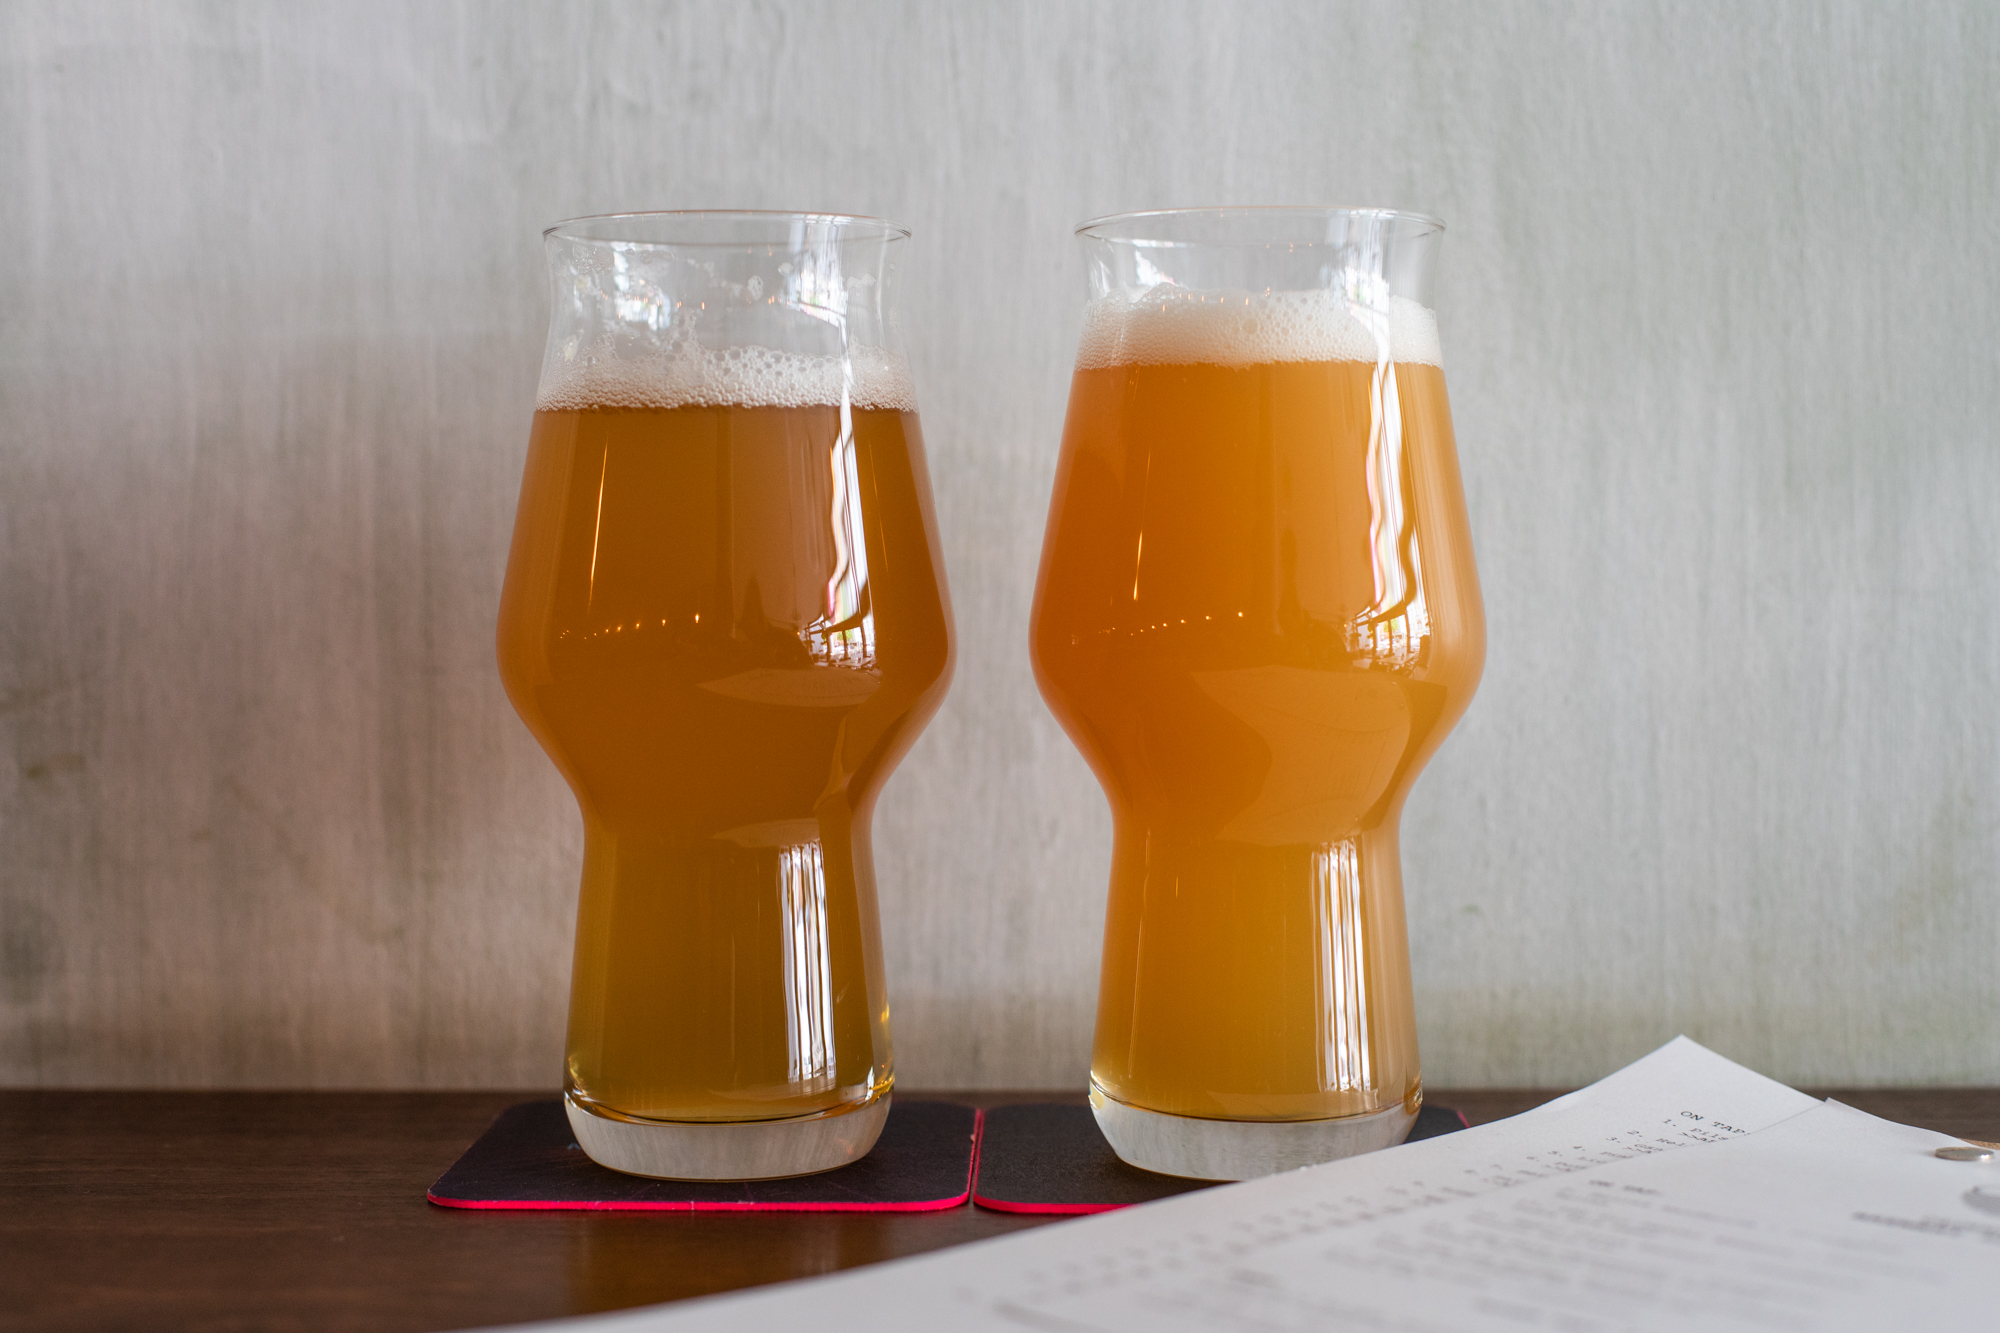 DDH IPA Enigma Chinook and DDH Pale Centennial by Cloudwater Brew Co at Muted Horn, a craft beer bar in Berlin Neukölln